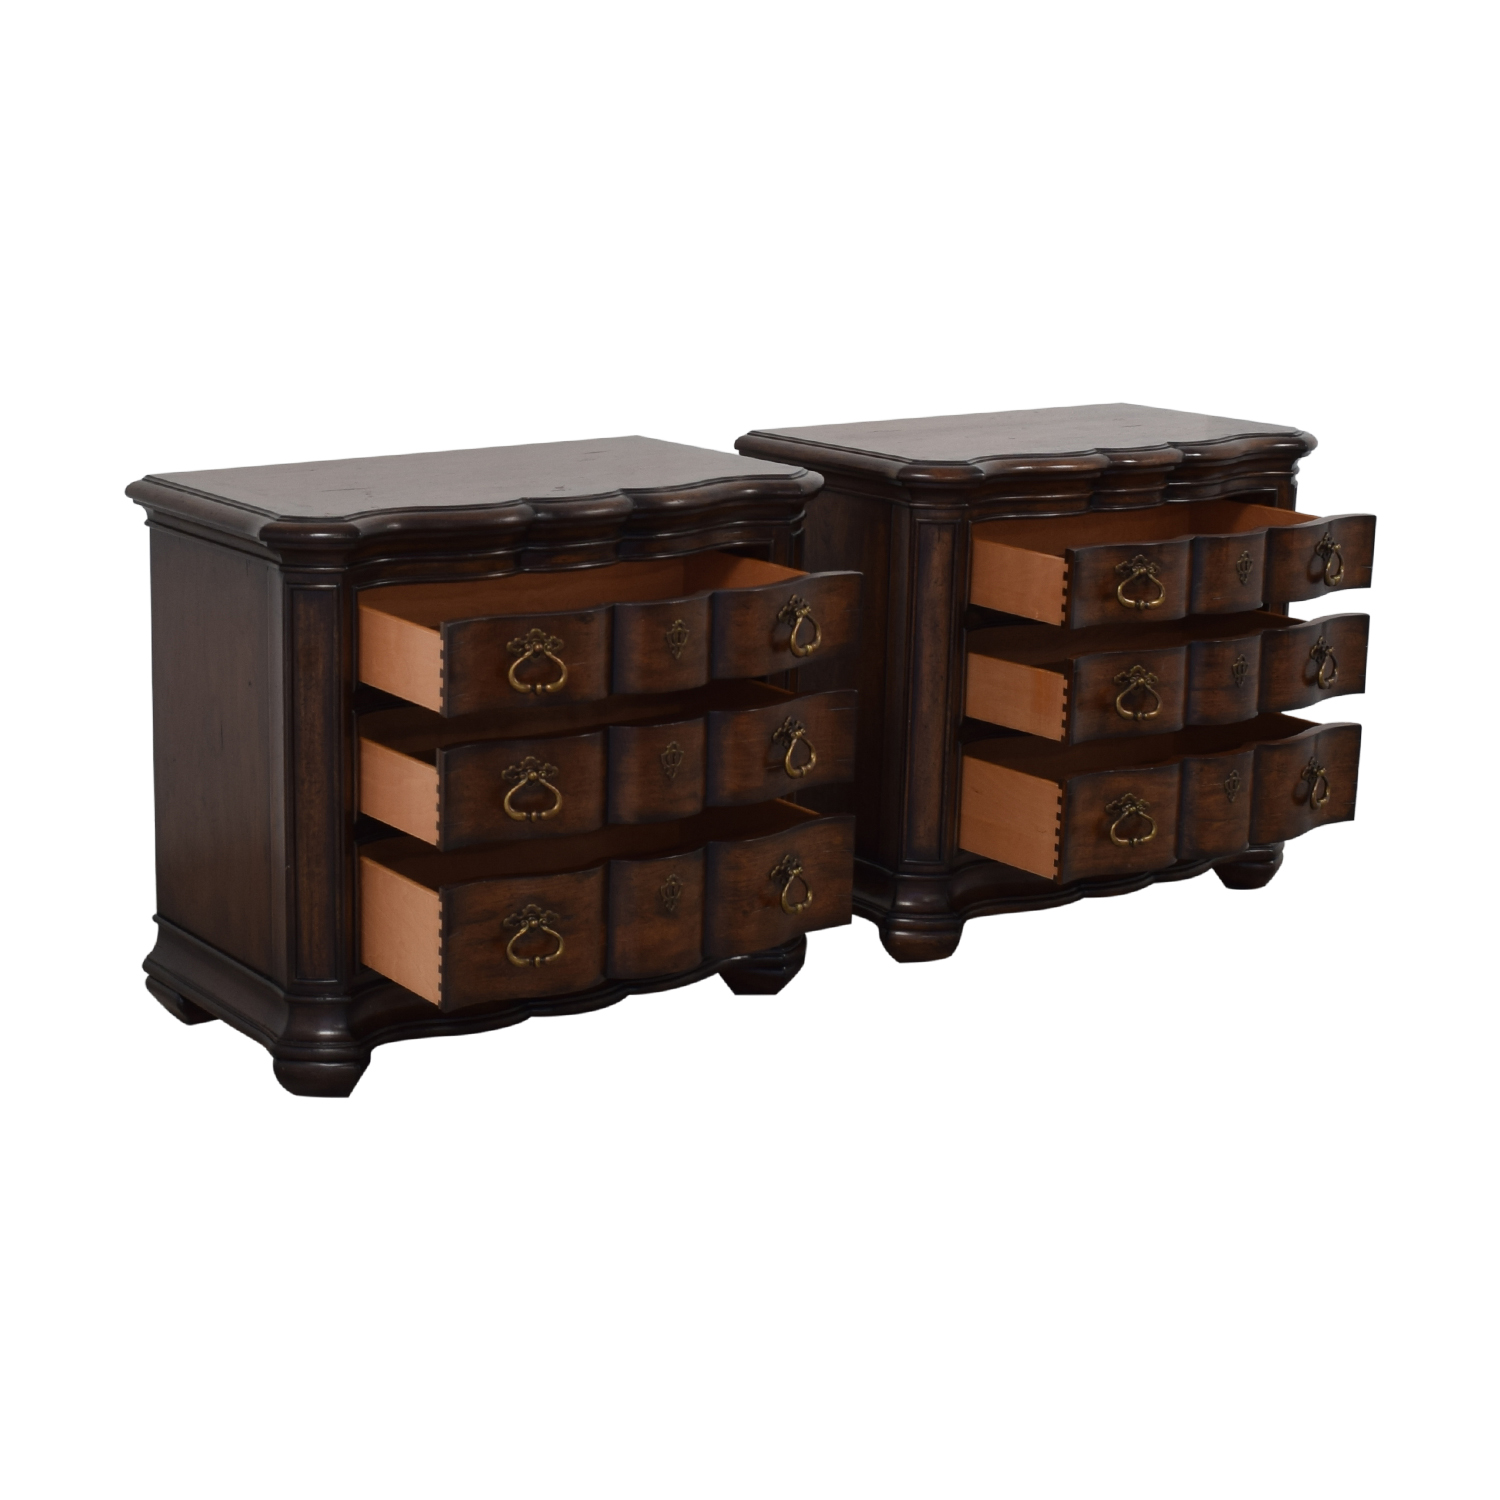 Thomasville Thomasville Hills of Tuscany Lucca Nightstands End Tables